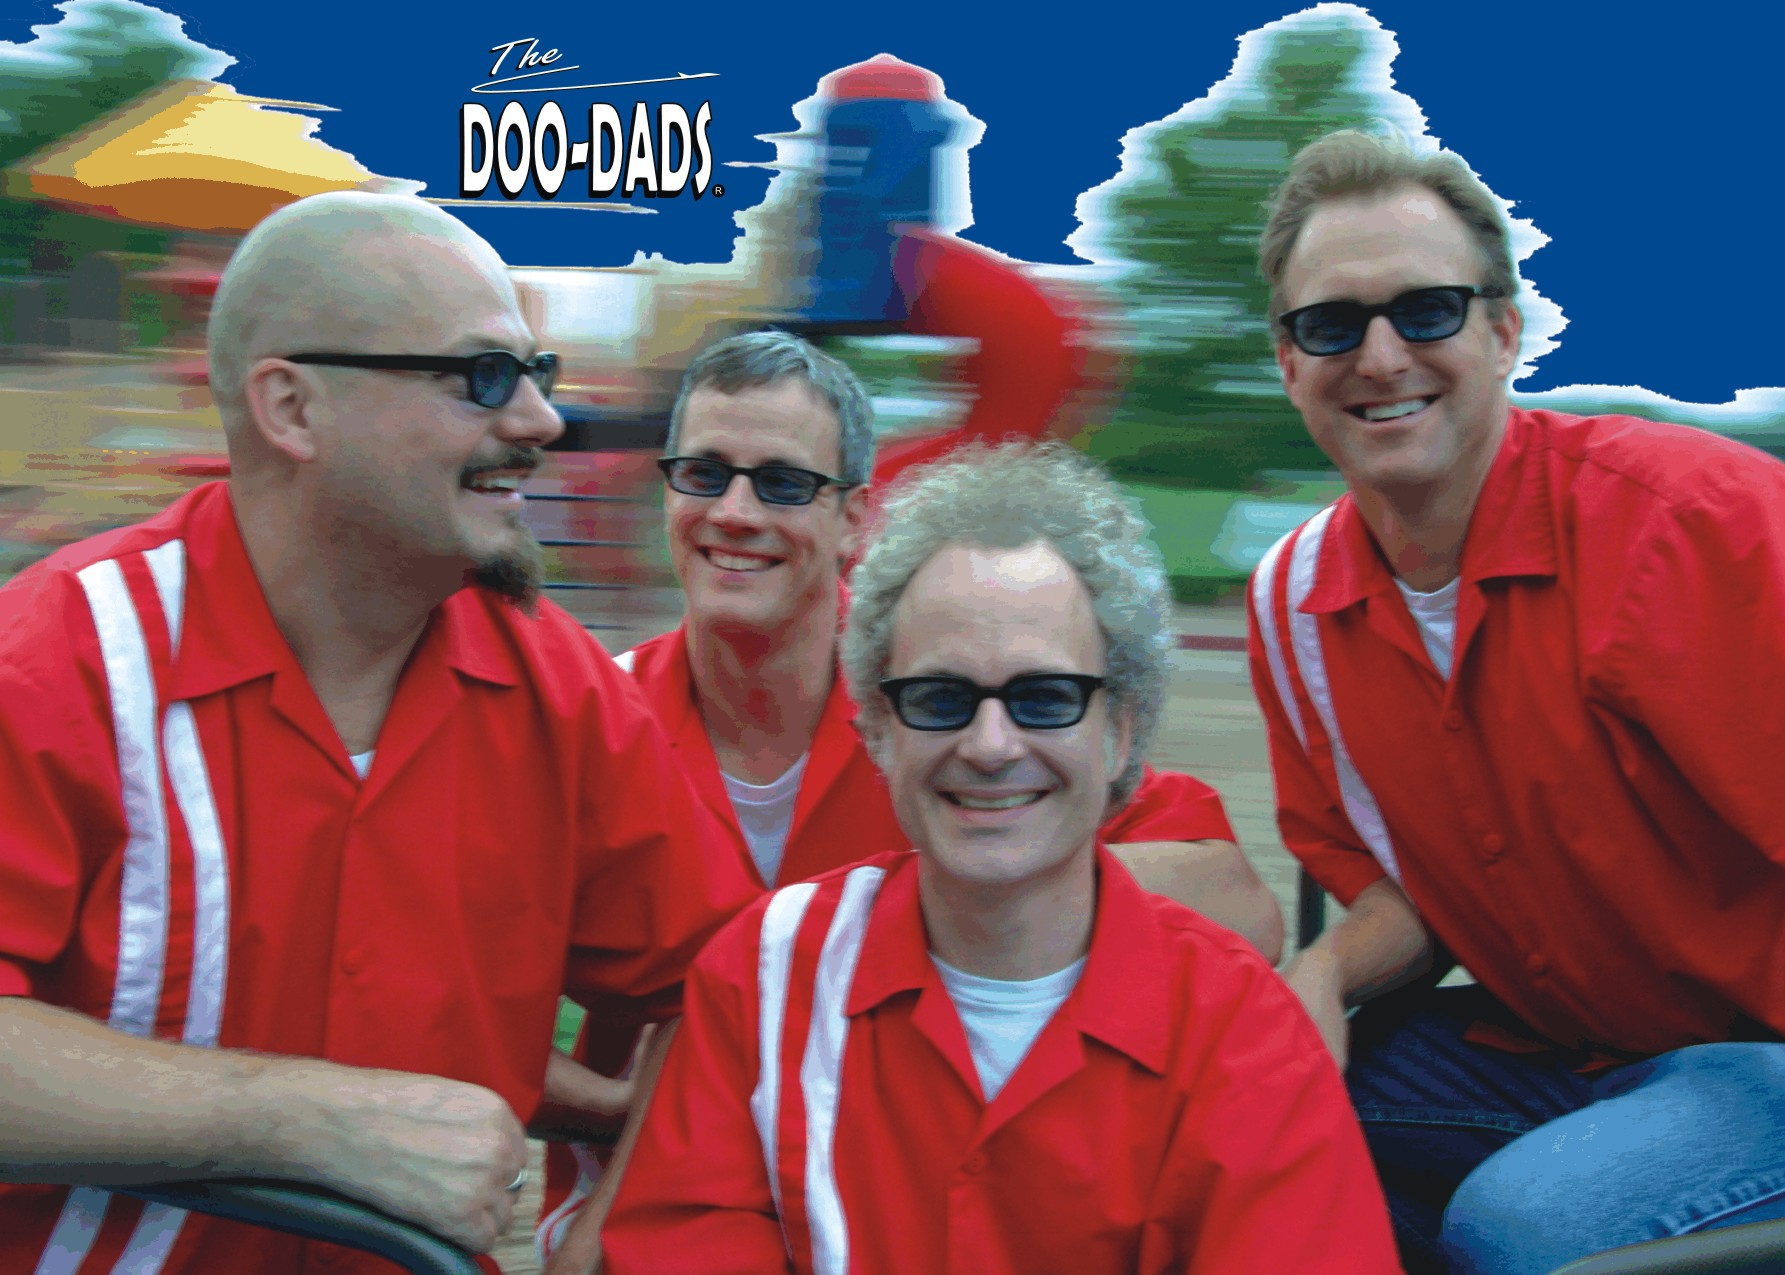 The Doo-Dads